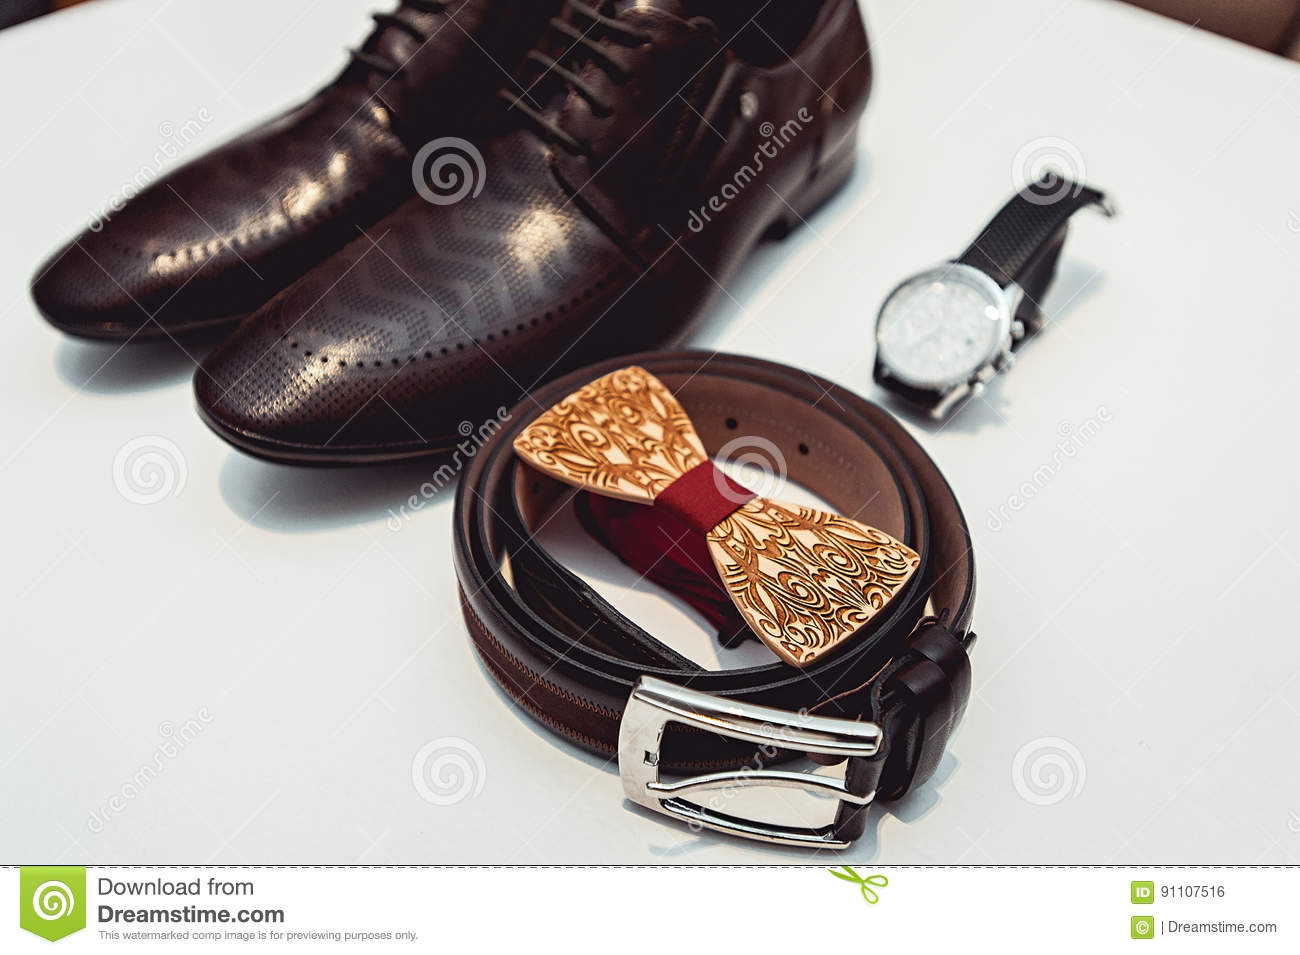 ec46dd6414be Wooden bow tie, brown leather shoes, belt, watch. Grooms wedding morning.  Close up of modern man accessories. Close up of modern man accessories on a  white ...